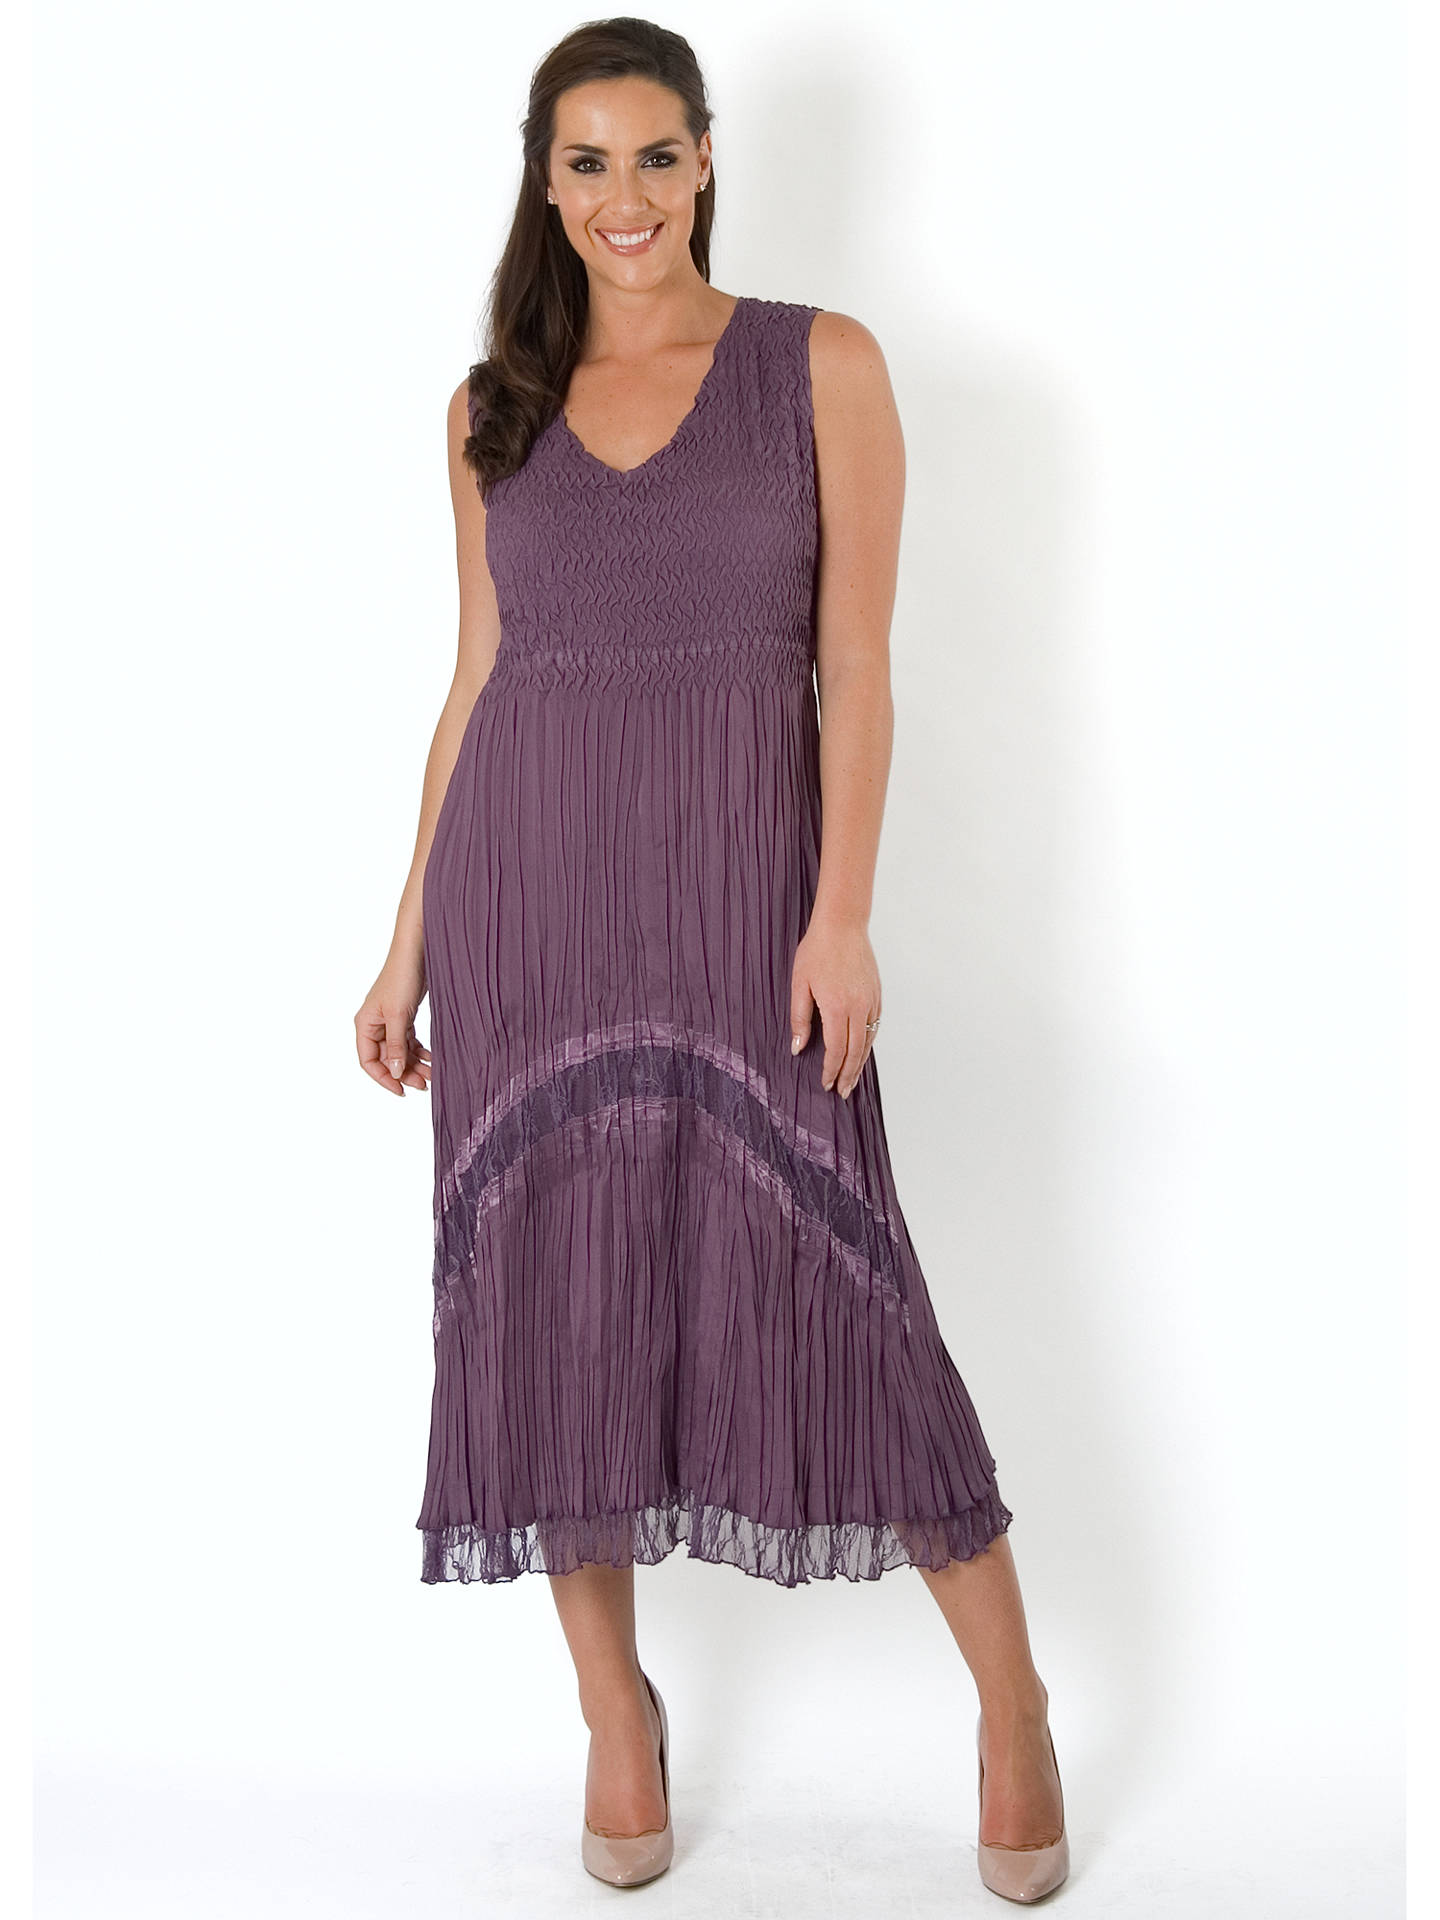 BuyChesca Crush Pleat Lace Dress, Haze, 20-22 Online at johnlewis.com